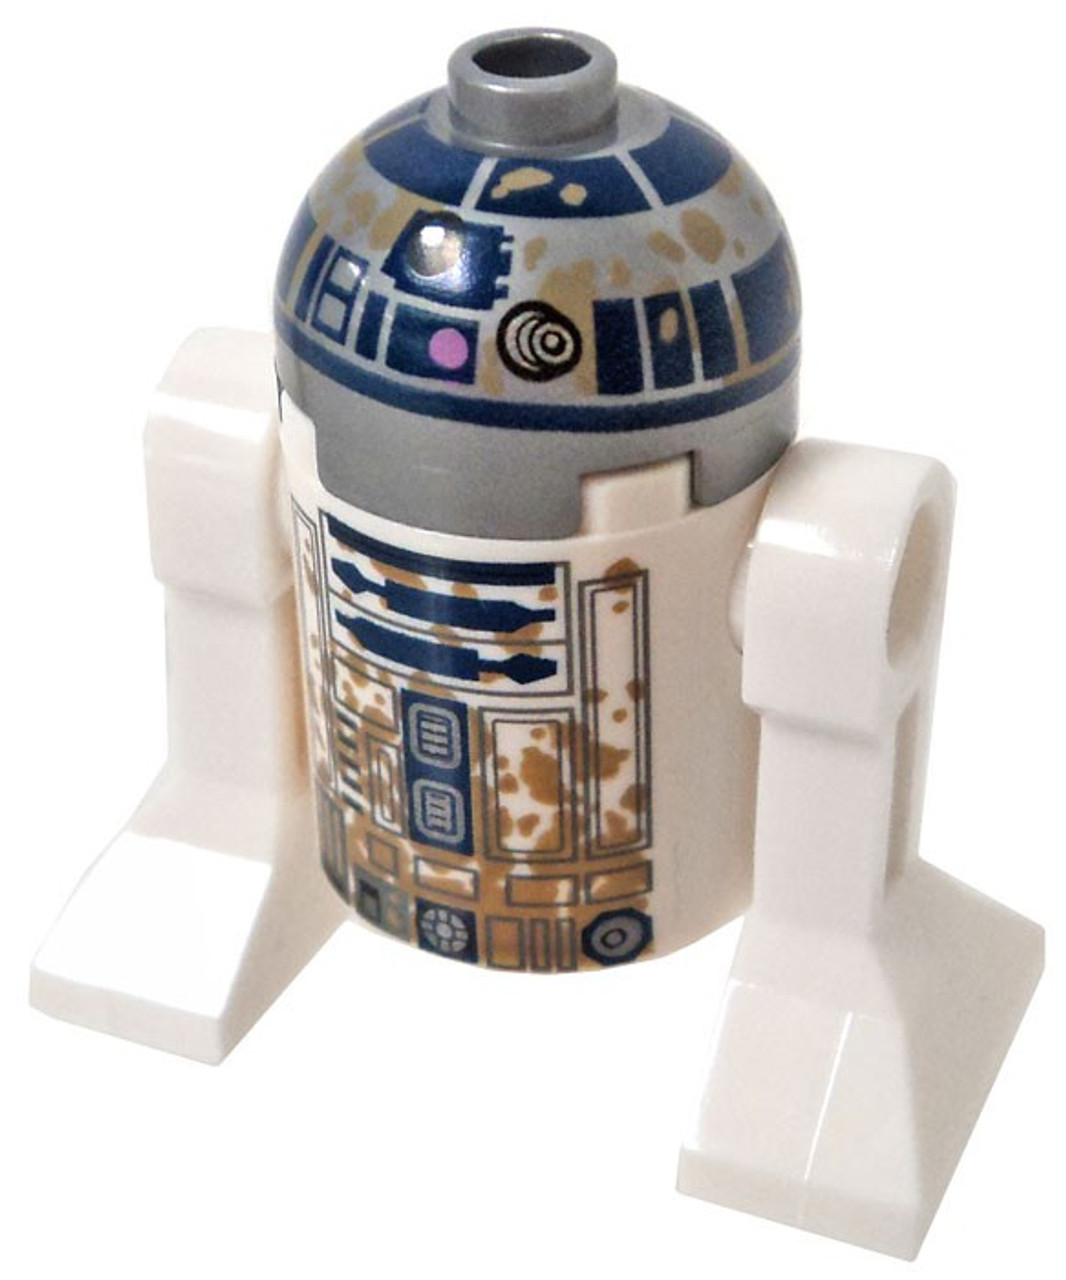 Lego star wars loose r2 d2 minifigure with dirt stains loose toywiz - Lego starwars r2d2 ...